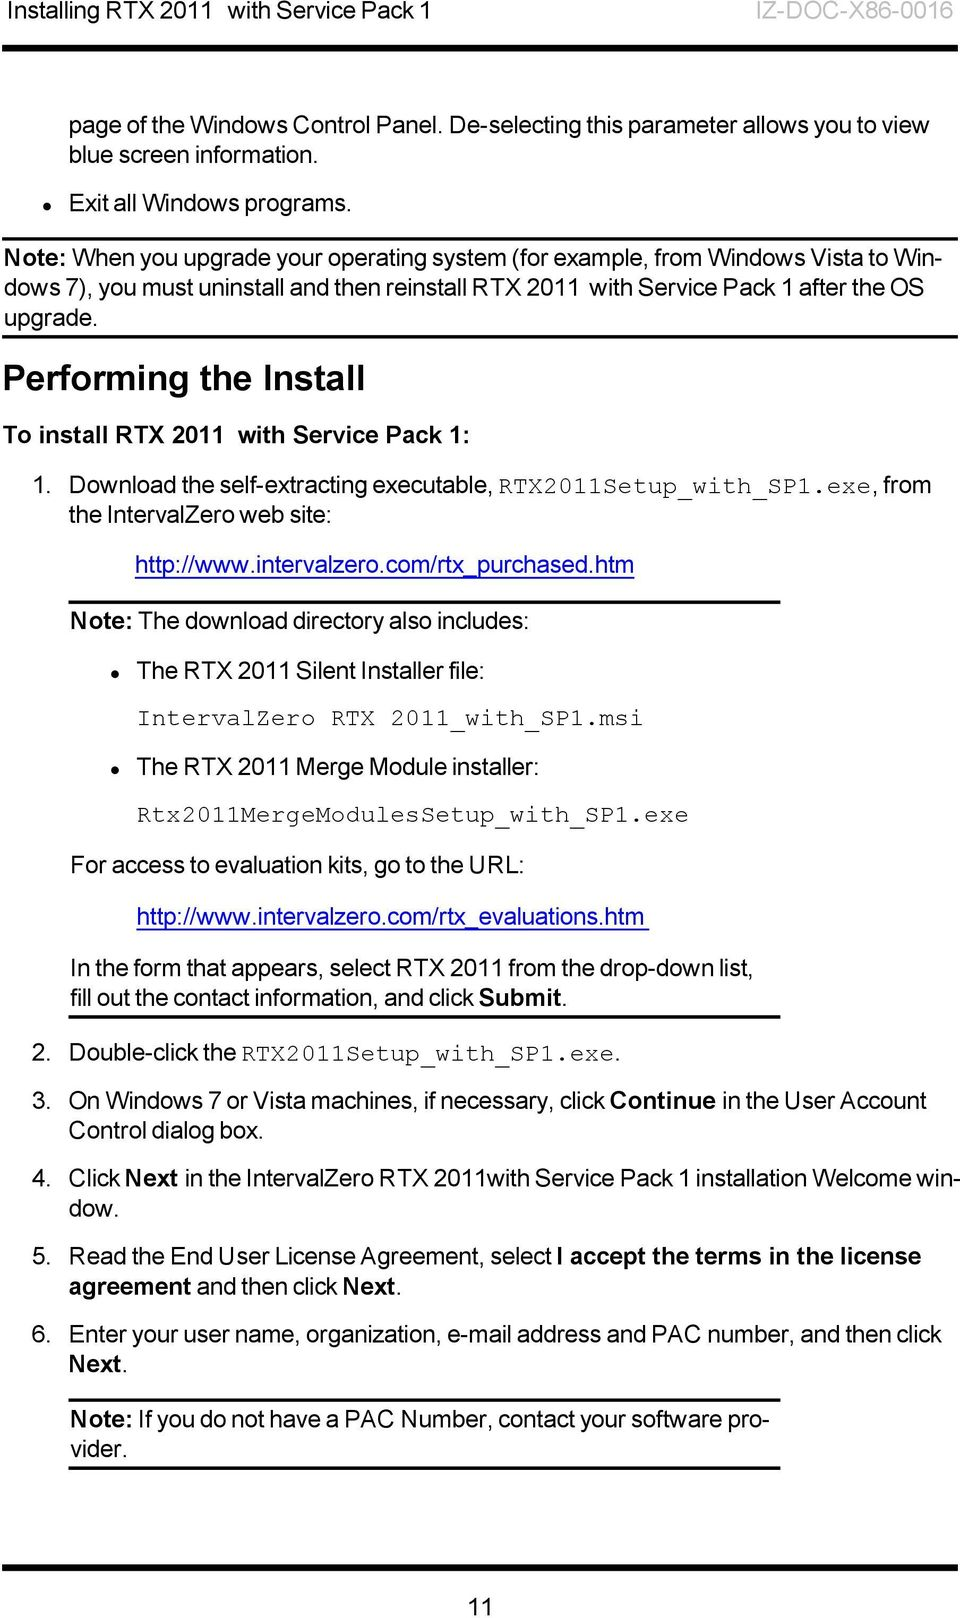 Performing the Install To install RTX 2011 with Service Pack 1: 1. Download the self-extracting executable, RTX2011Setup_with_SP1.exe, from the IntervalZero web site: http://www.intervalzero.